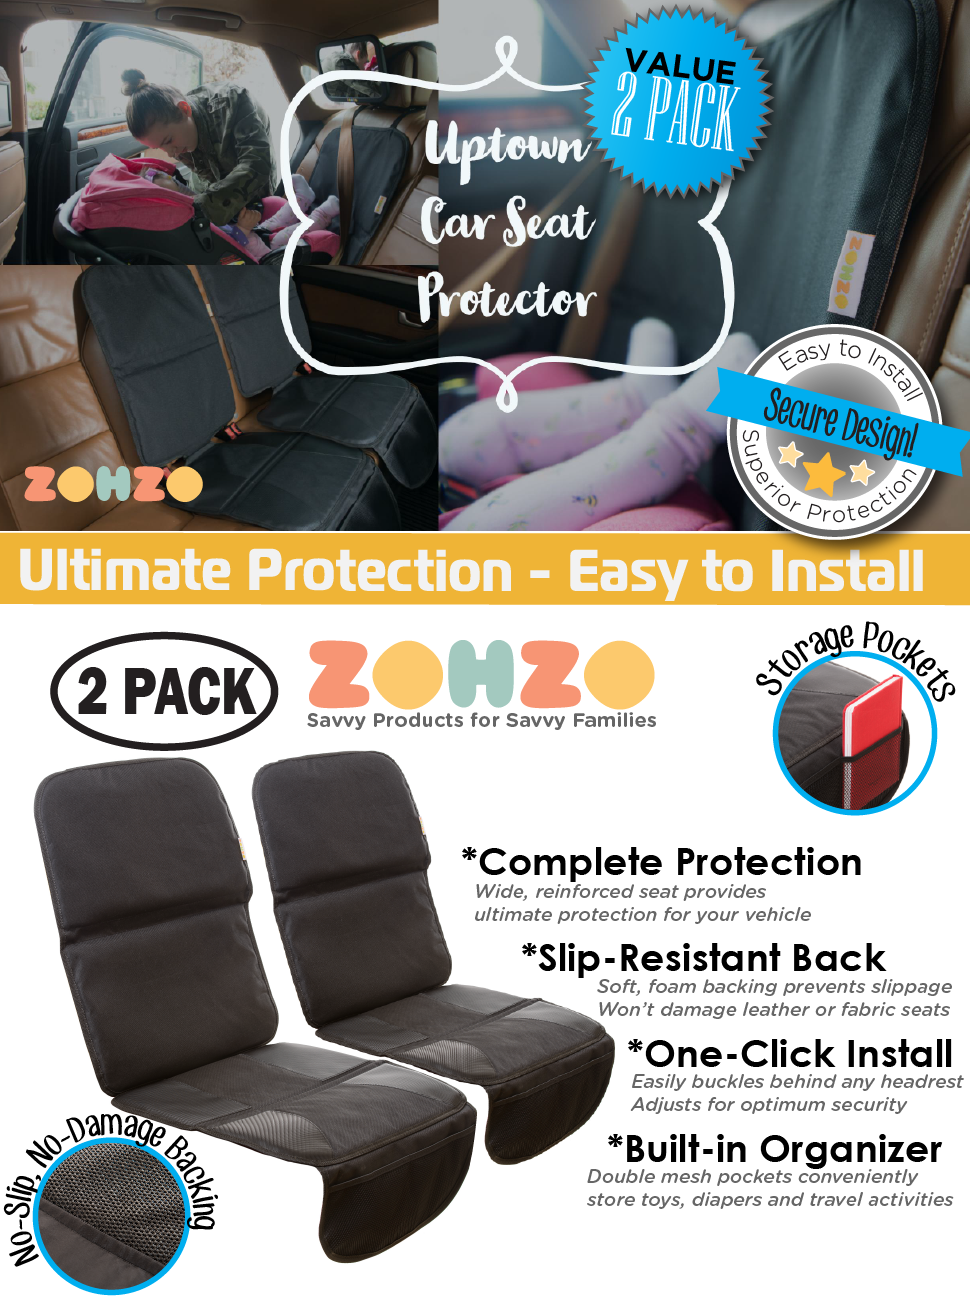 ZOHZO 2 pack car seat protector - value pack, slip resistant, easy to install